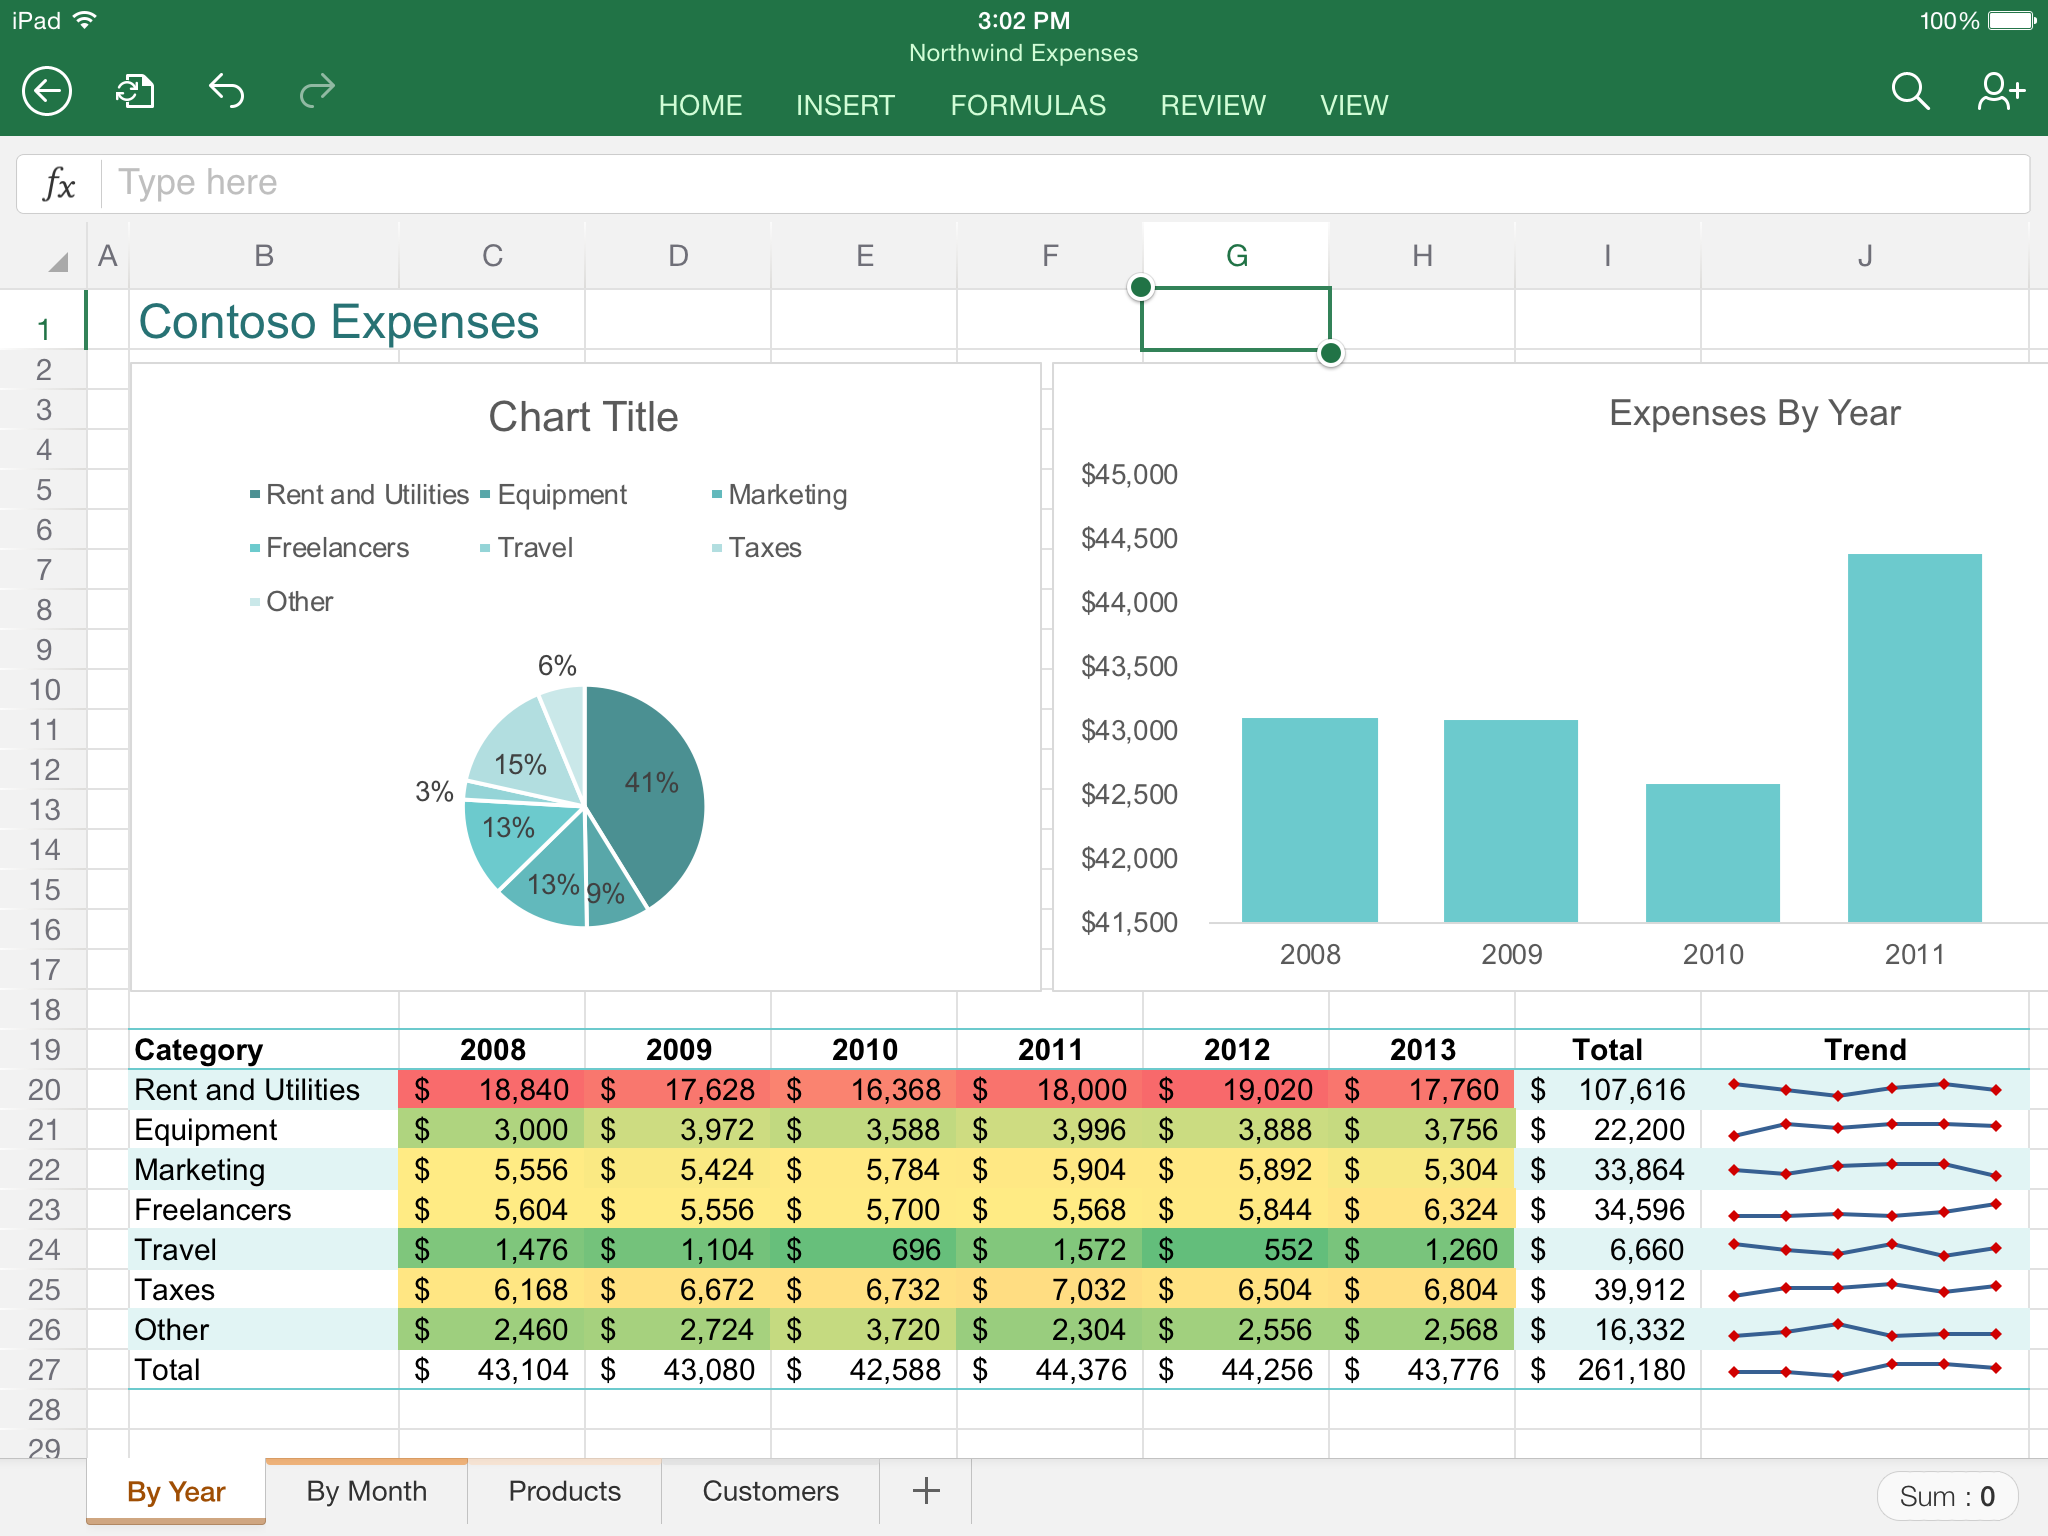 Ediblewildsus  Pleasant App Highlight Excel  Mobile Digital Now With Extraordinary Excel In Action With Astounding Mac Excel Add Ins Also Stock Excel Format In Addition Microsoft Excel Standalone And Excel Second Y Axis As Well As How To Format Excel Spreadsheet Additionally What Is Sales Forecasting In Excel From Youstonybrookedu With Ediblewildsus  Extraordinary App Highlight Excel  Mobile Digital Now With Astounding Excel In Action And Pleasant Mac Excel Add Ins Also Stock Excel Format In Addition Microsoft Excel Standalone From Youstonybrookedu